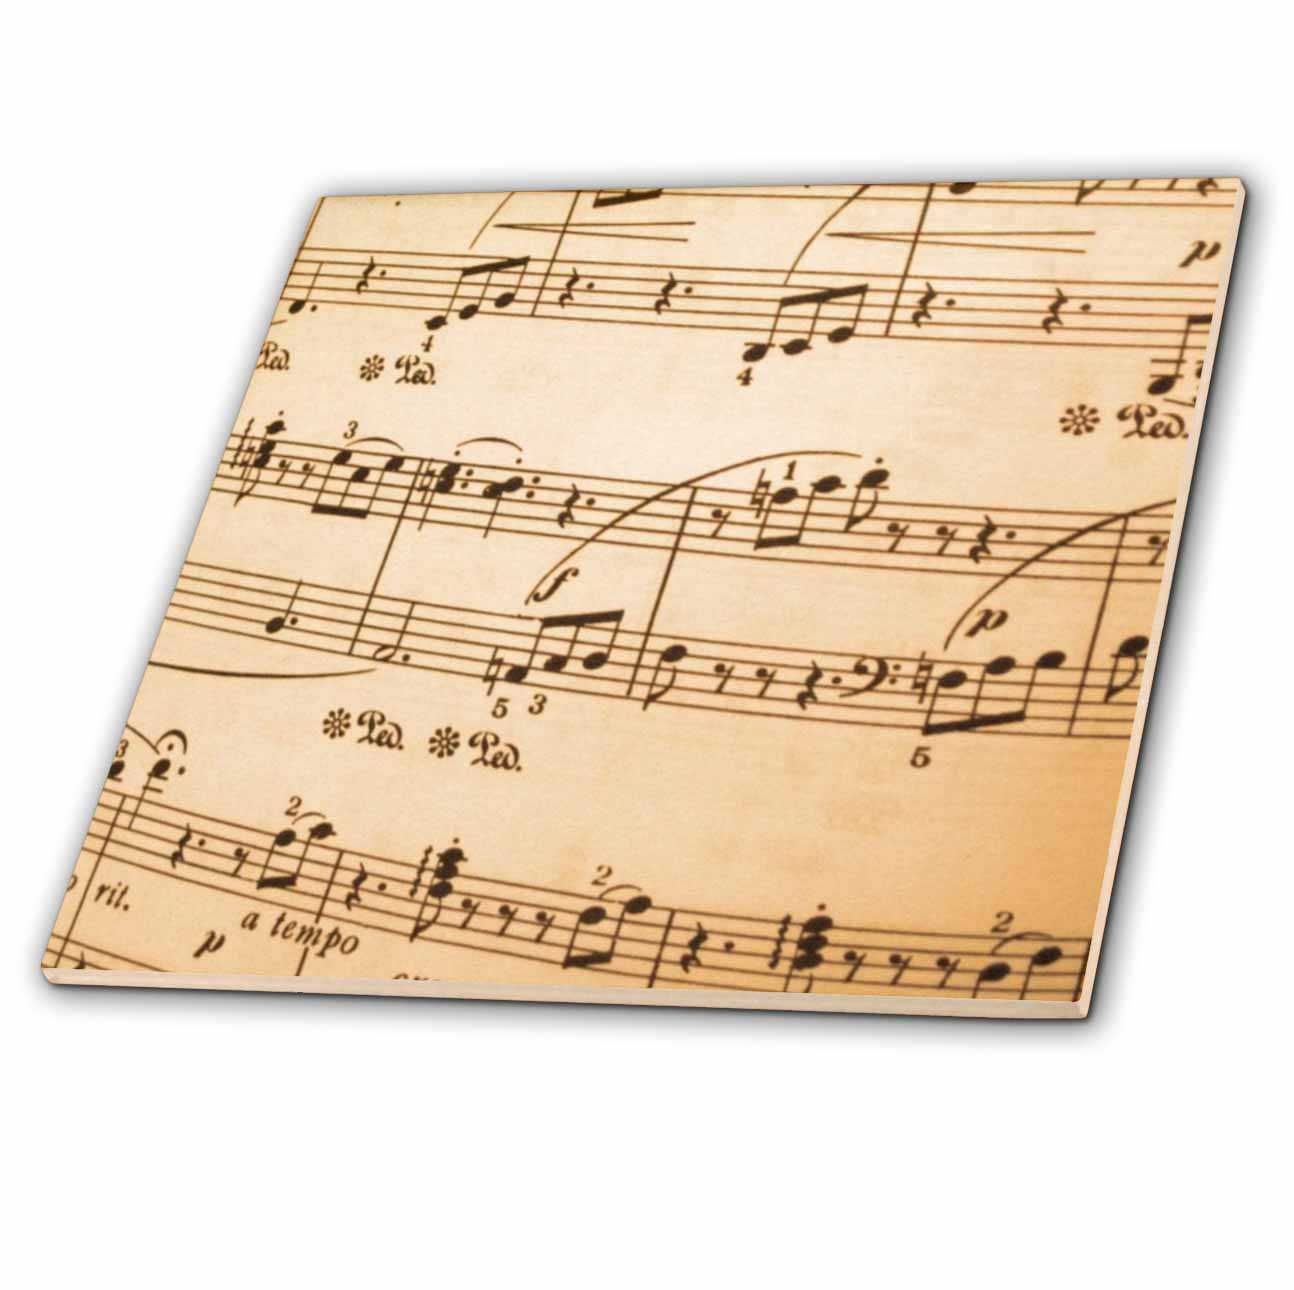 3dRose Sheet Music - Ceramic Tile, 6-inch